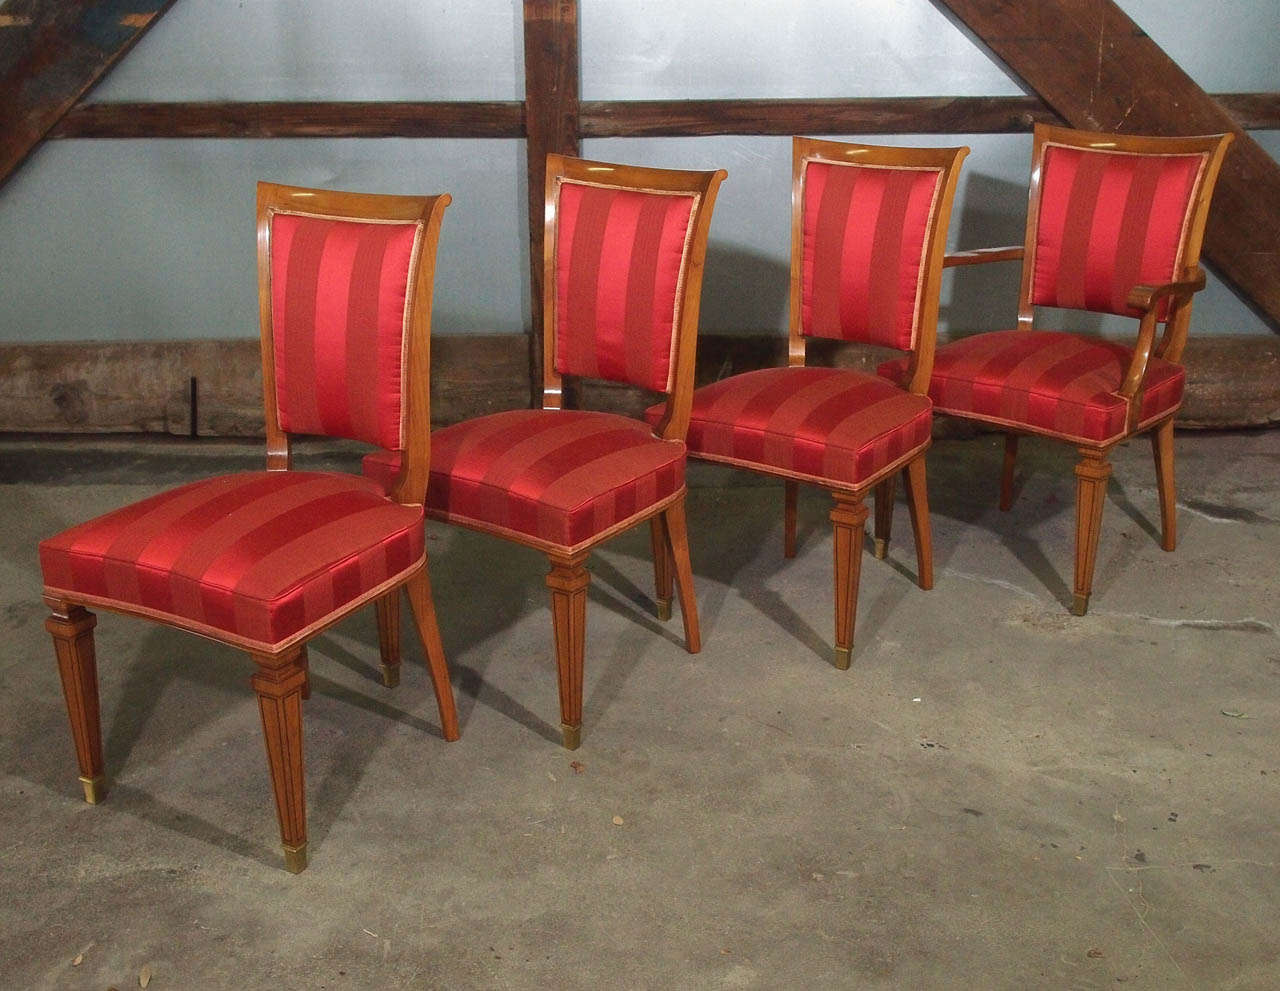 Elegant set of Parisian dining chairs. Made of the finest French walnut and recently professionally French hand polished. Sturdy and solid with solid brass feet and onyx details throughout its legs. Upholstery is original (stripped magenta/red